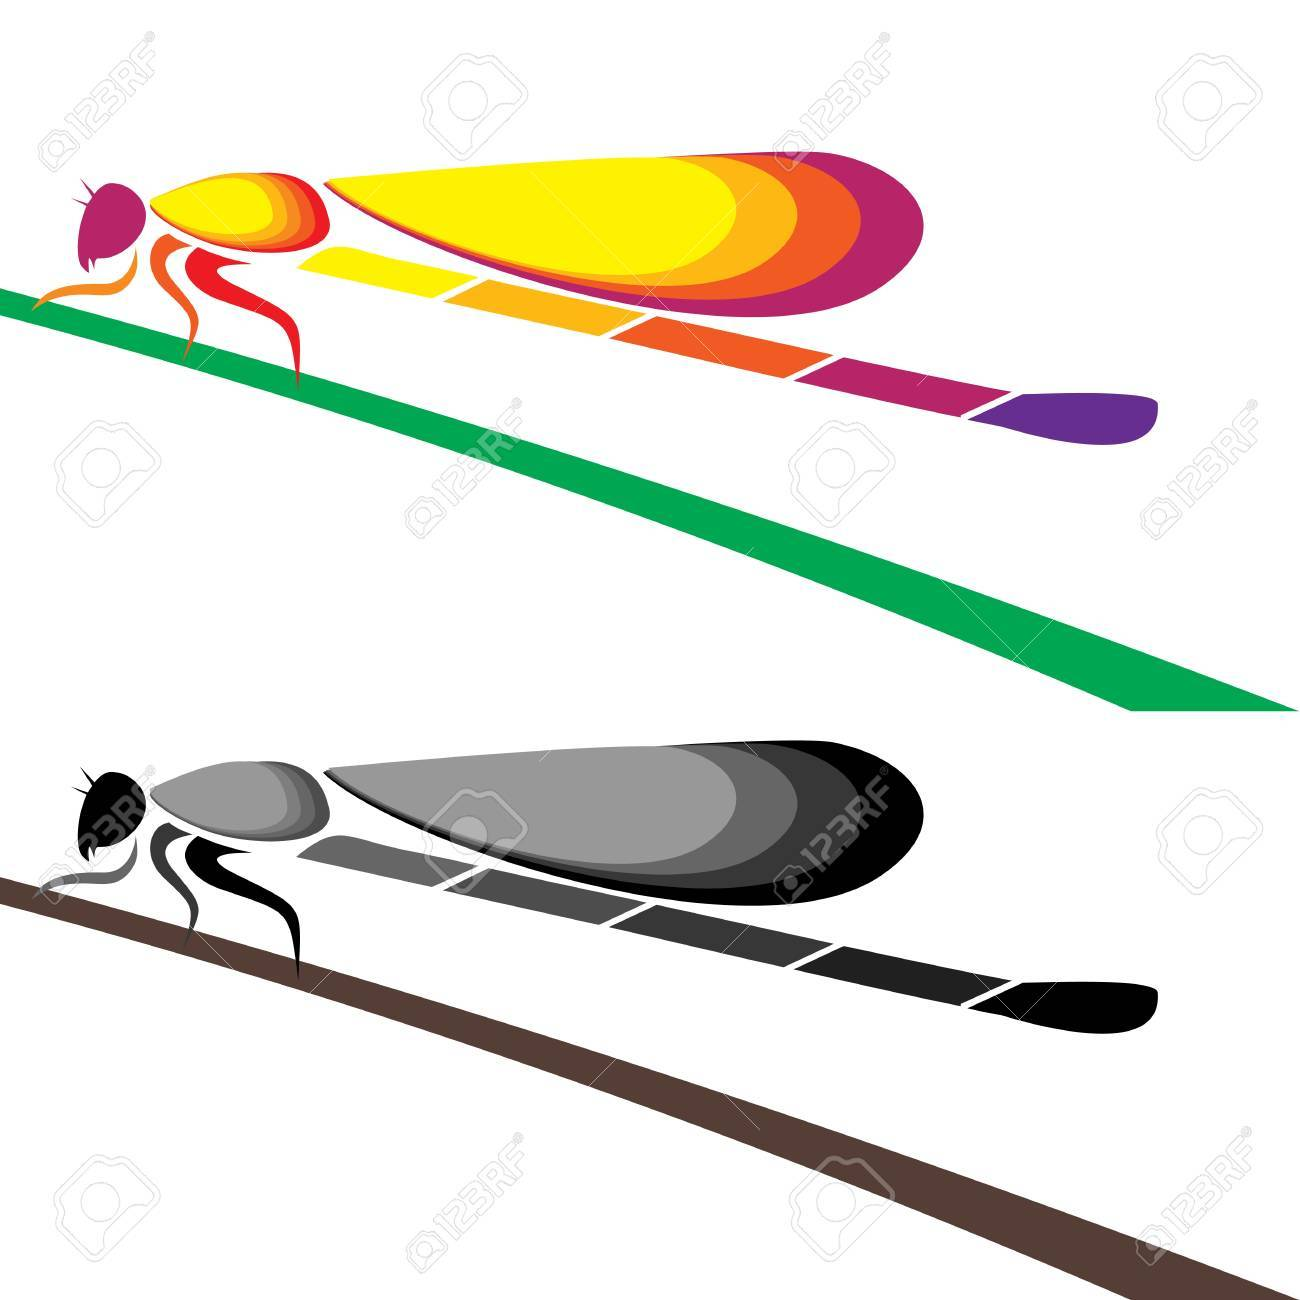 Dragonfly perched on a leaf - Illustrations Stock Vector - 16158343